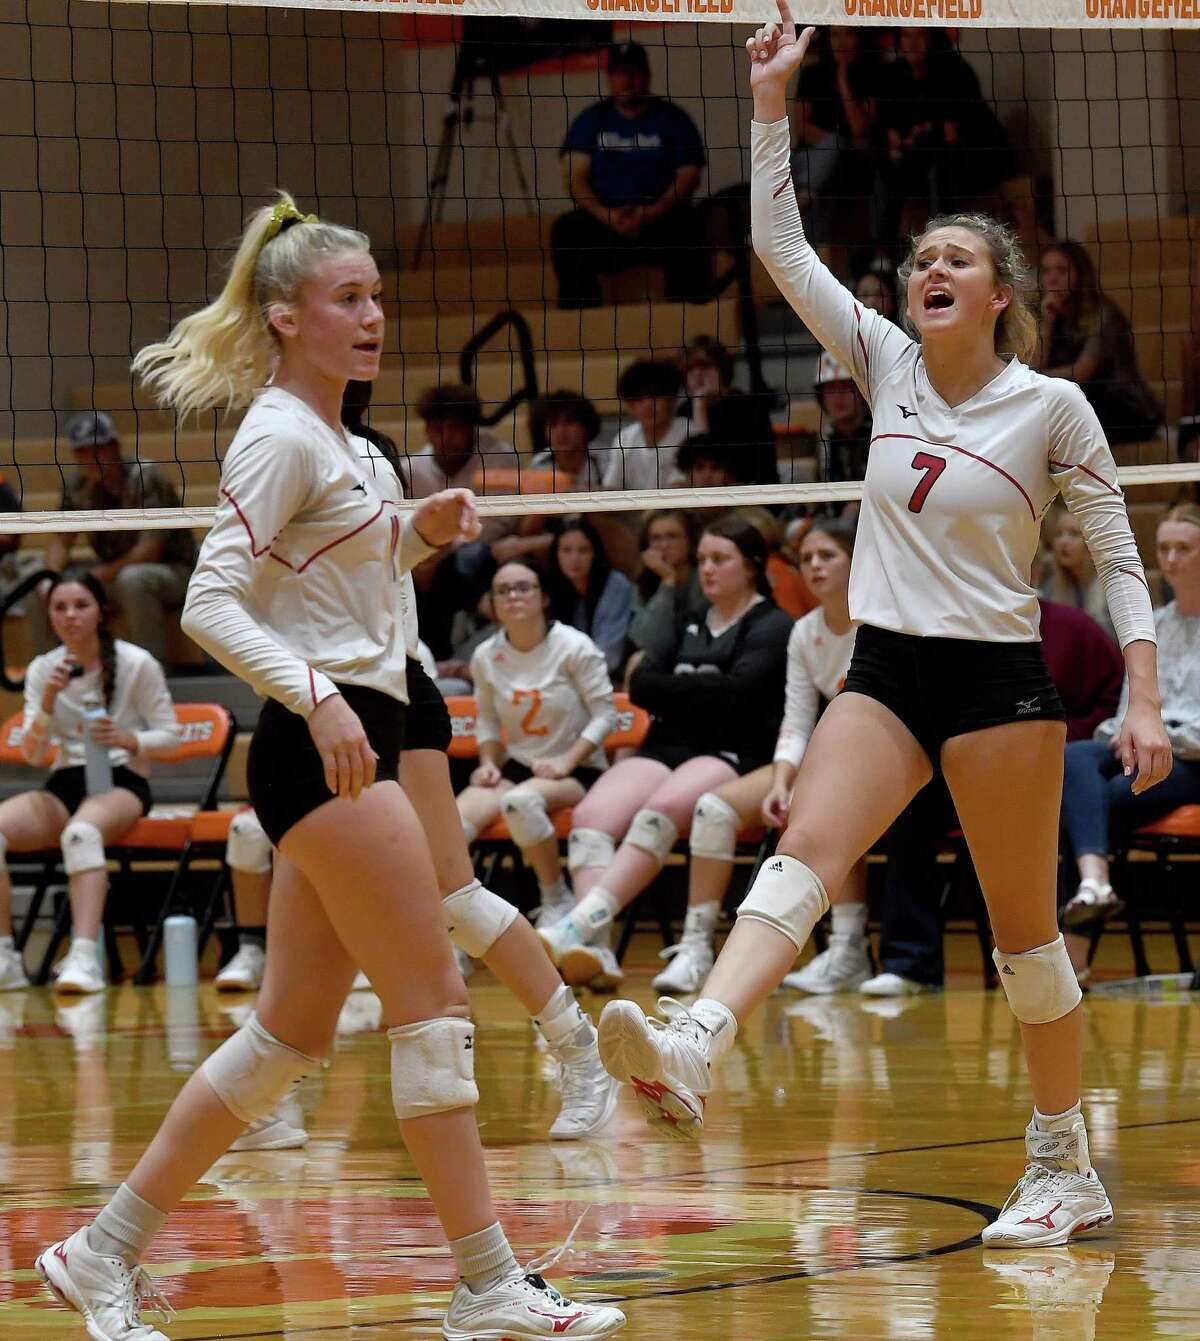 Bridge City's Taryn Dorion and teammates react after advancing against Orangefield during their volleyball match-up at Orangefield. Photo made Wednesday, September 15, 2021 Kim Brent/The Enterprise